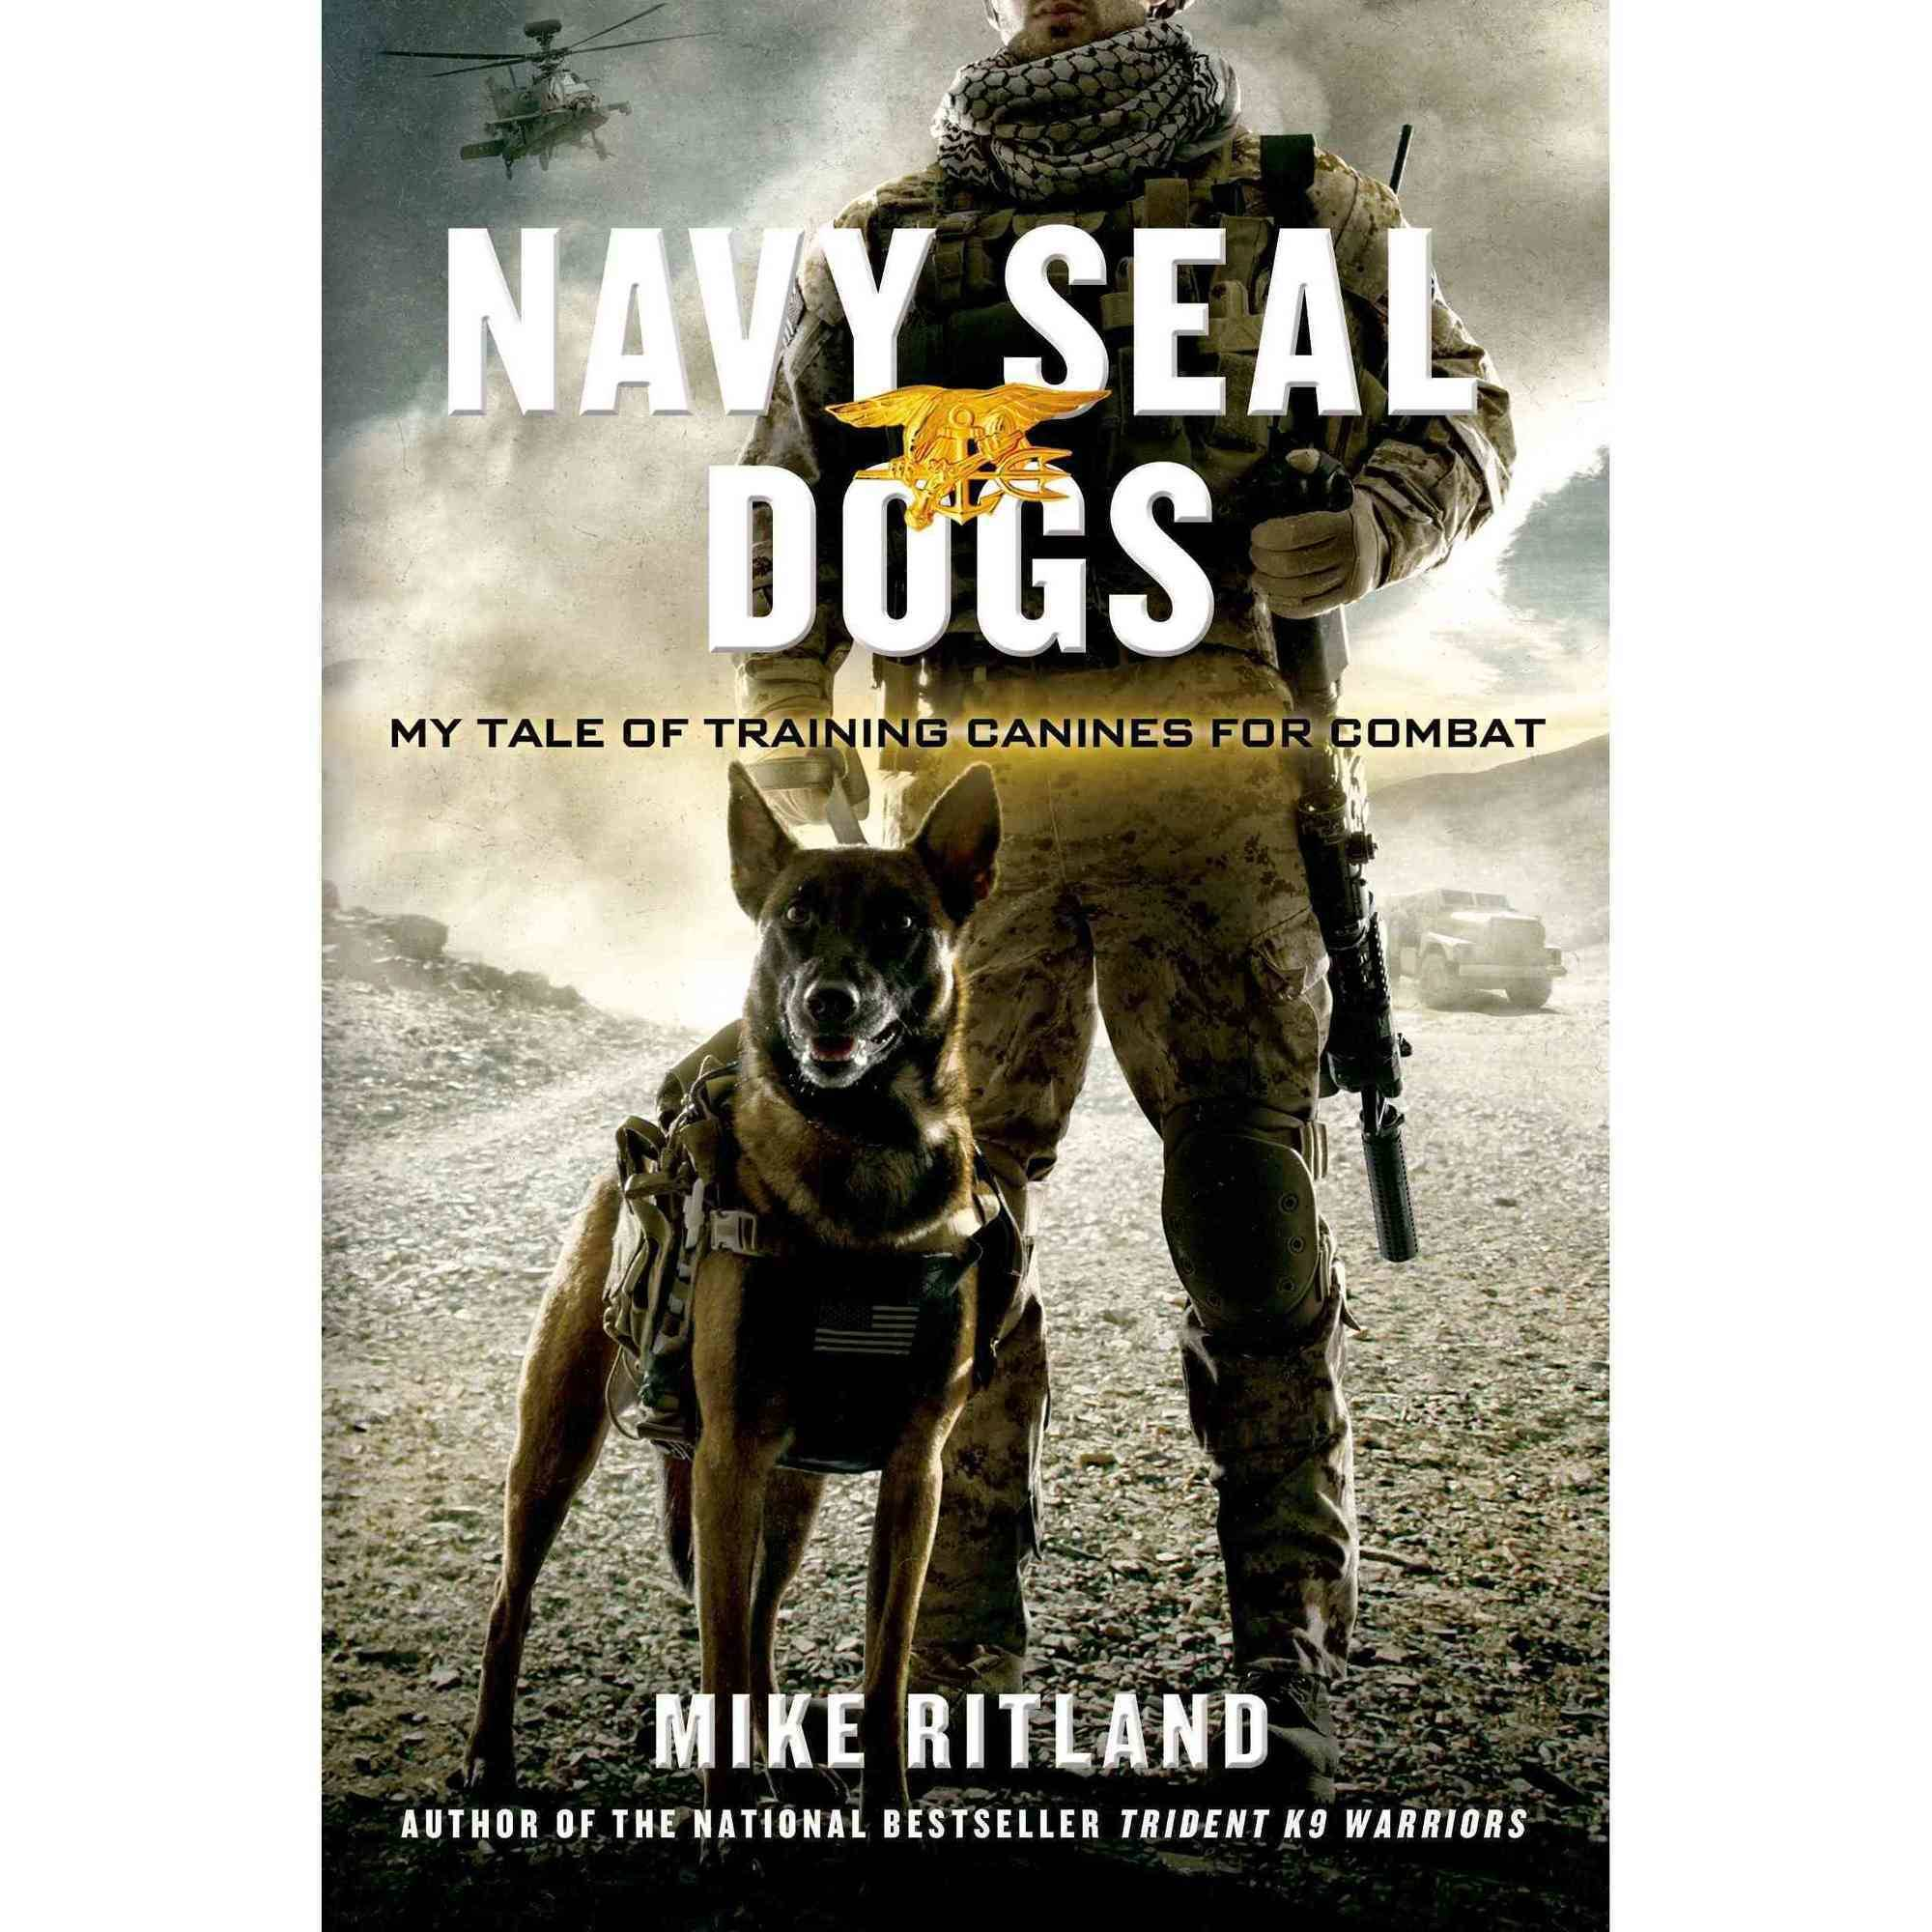 Navy Seal Dogs: My Tale of Training Canines for Combat